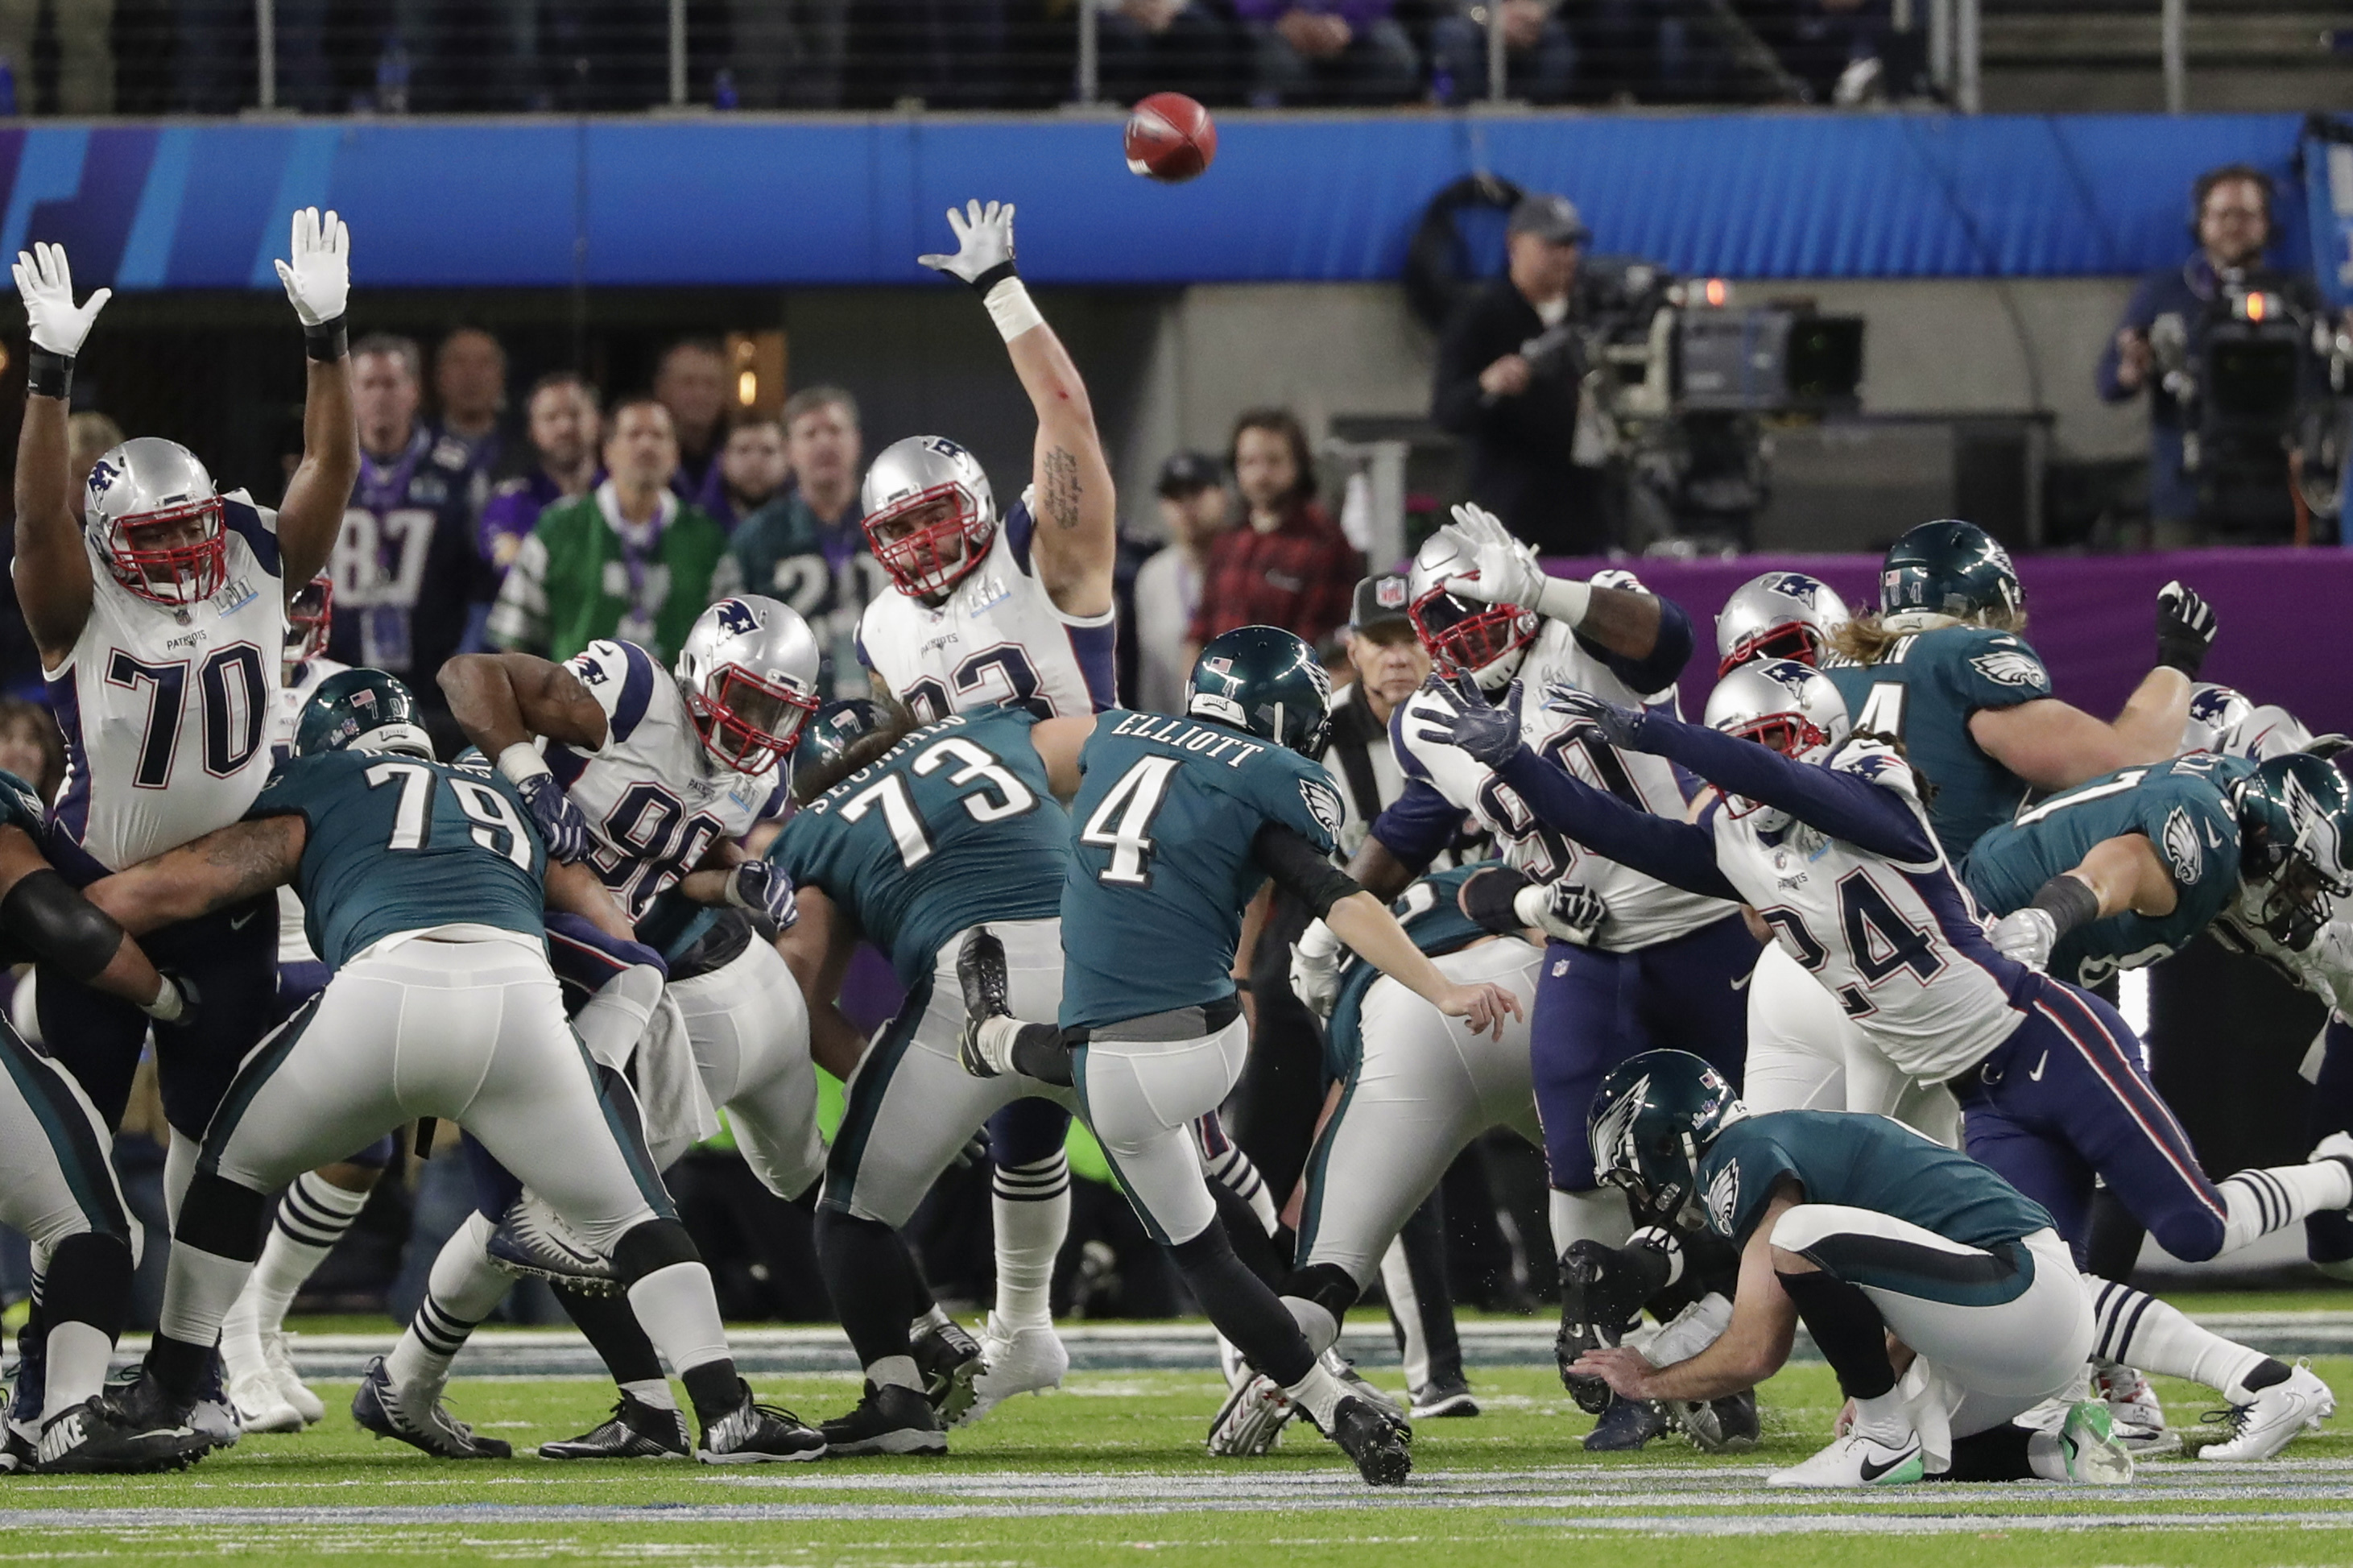 <div class='meta'><div class='origin-logo' data-origin='AP'></div><span class='caption-text' data-credit='AP Photo/Tony Gutierrez'>Philadelphia Eagles kicker Jake Elliott (4) misses an extra-point kick against the New England Patriots, during the first half of the NFL Super Bowl 52 football game.</span></div>